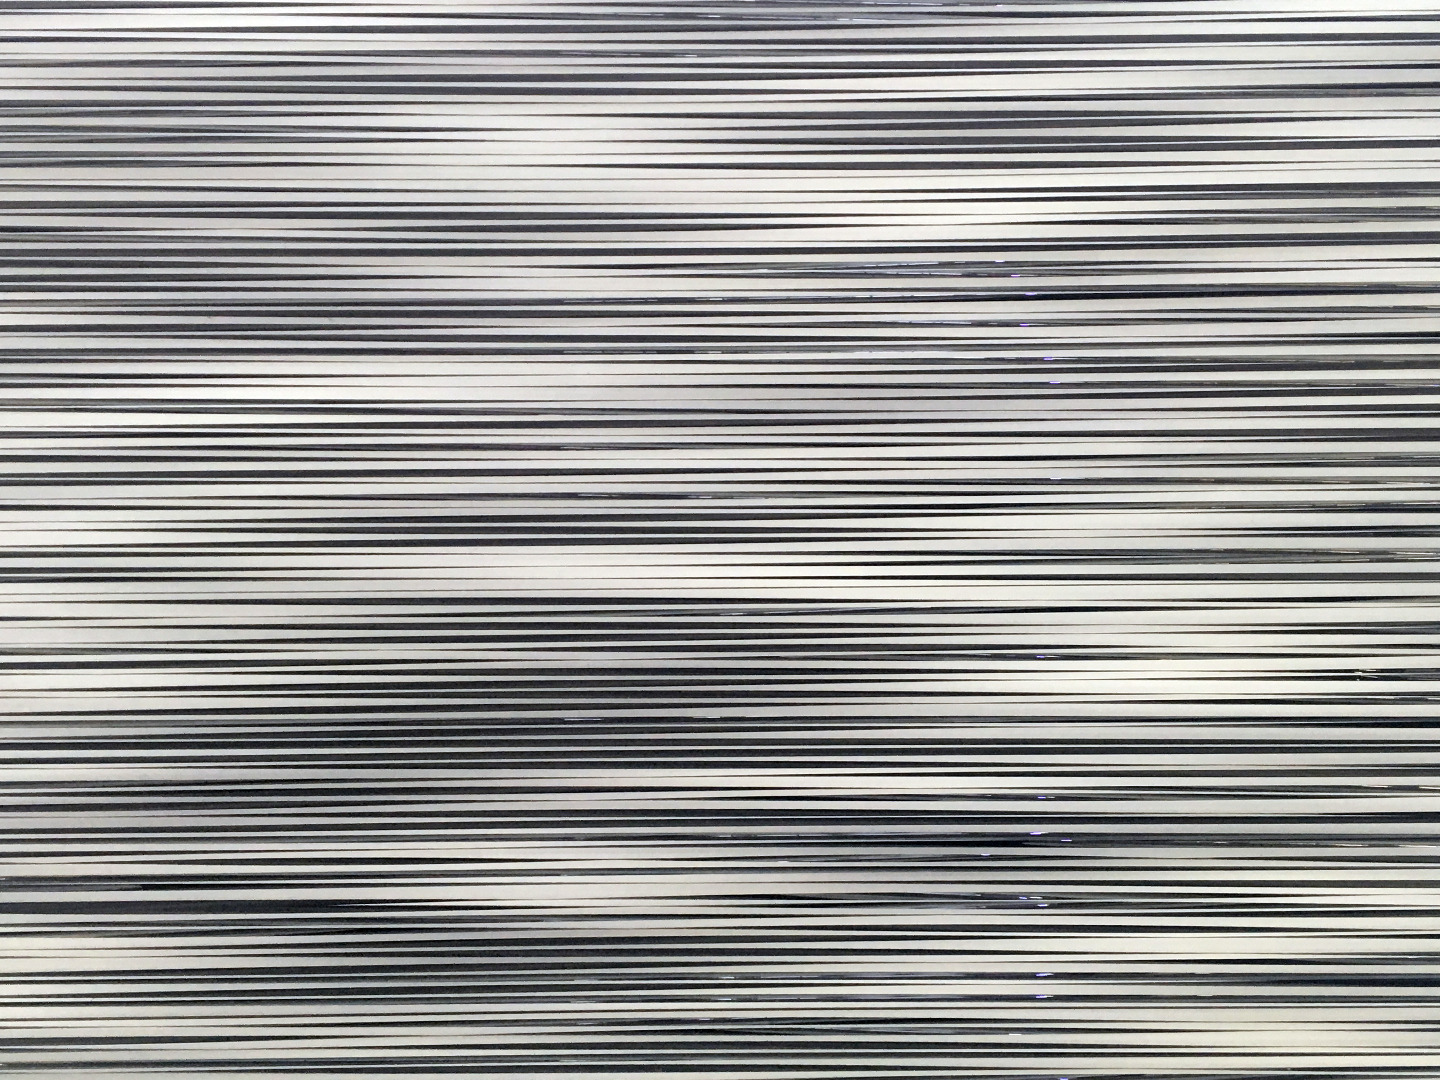 Elizabeth Thallauer, Moving Pictures, 2019, VHS, 1000 x 250 cm © und Foto: the artist